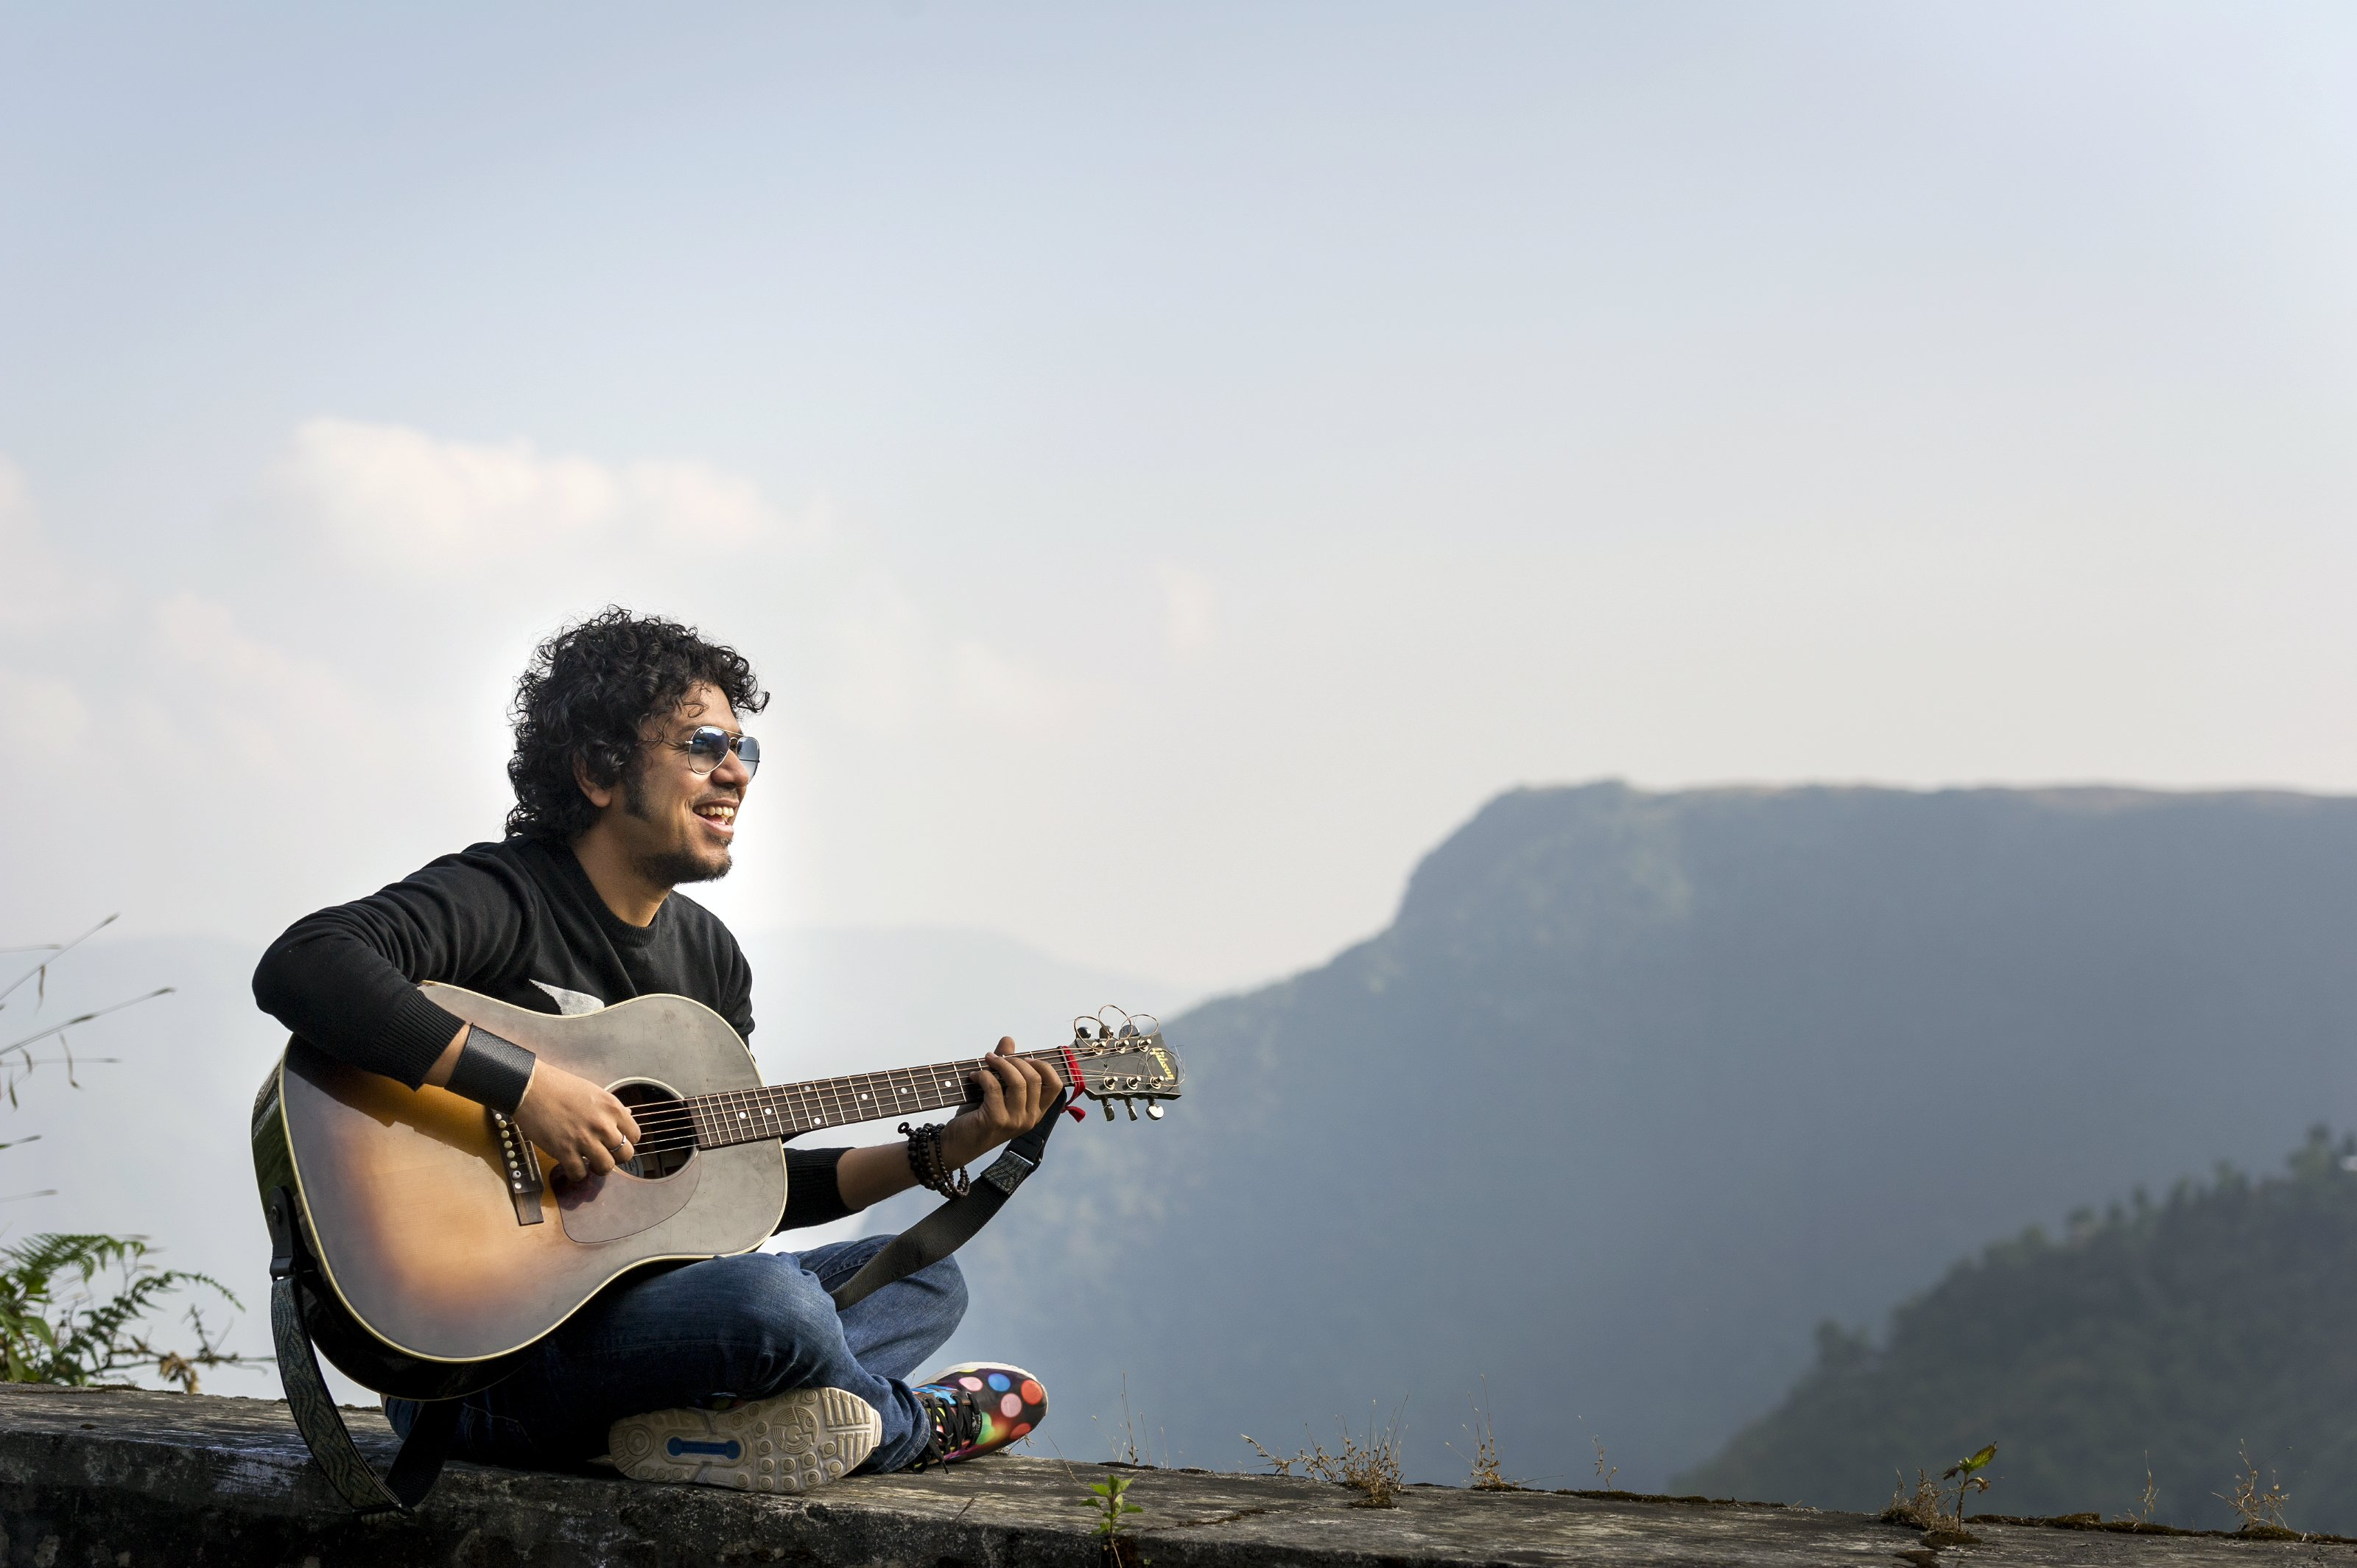 Papon   Papon About   Know Papon   Papon family   Papon Website